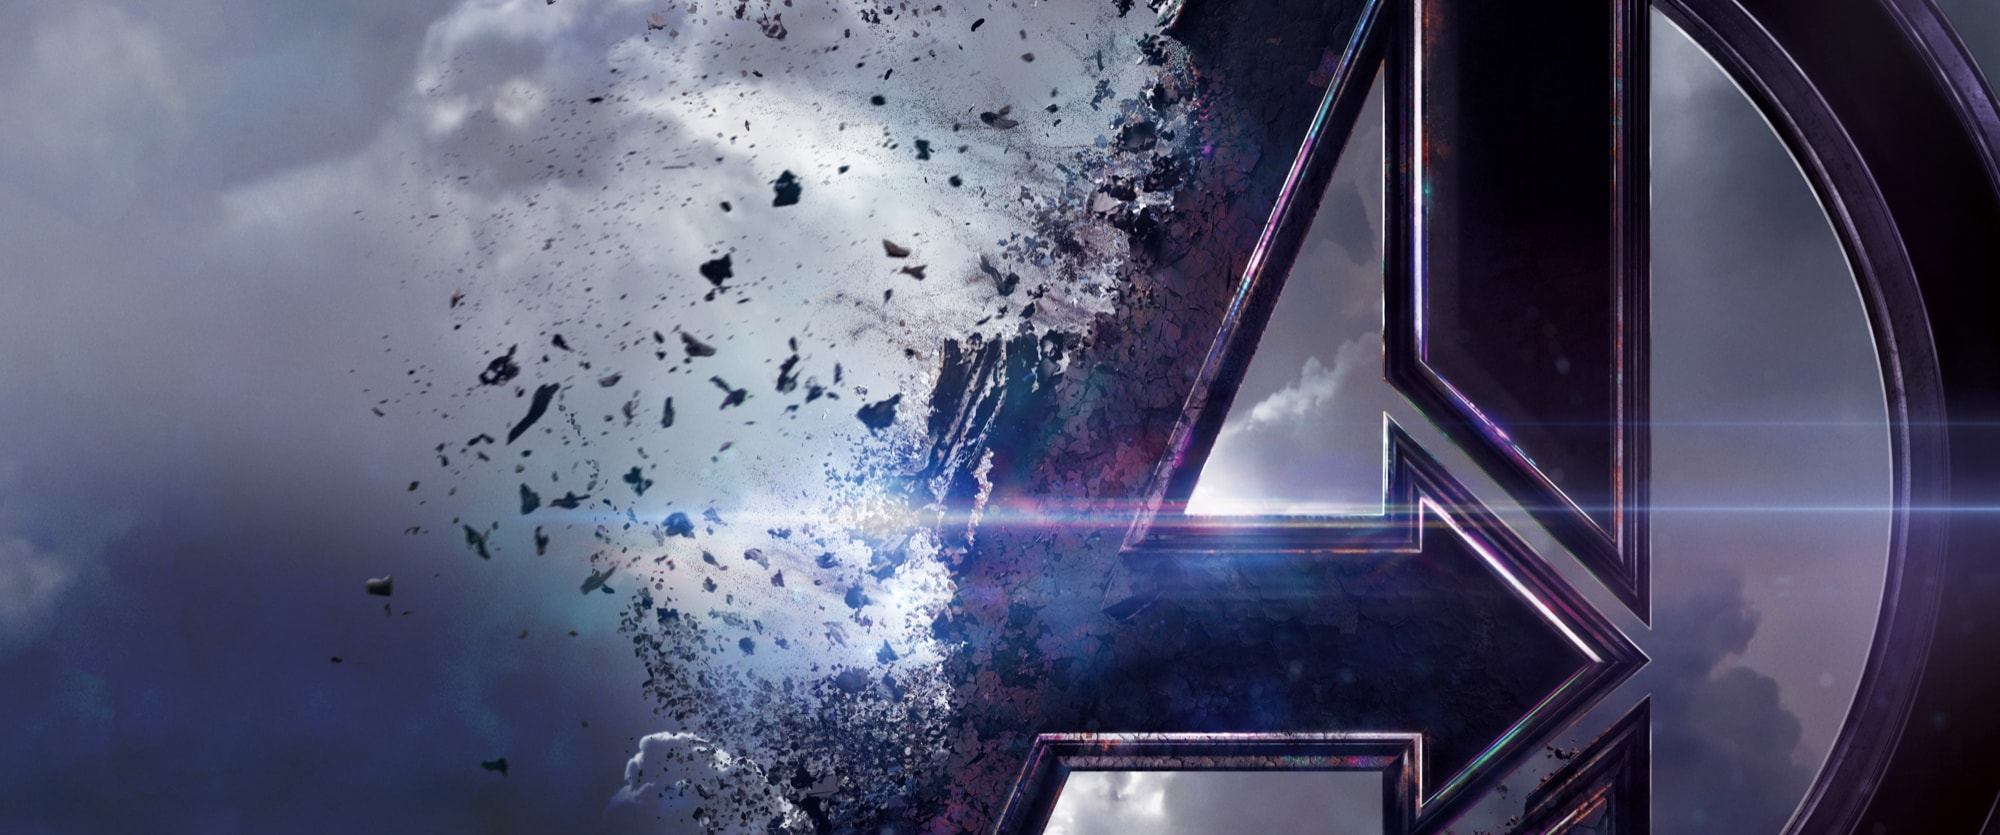 Avengers: Endgame Trailer Teaser Artwork